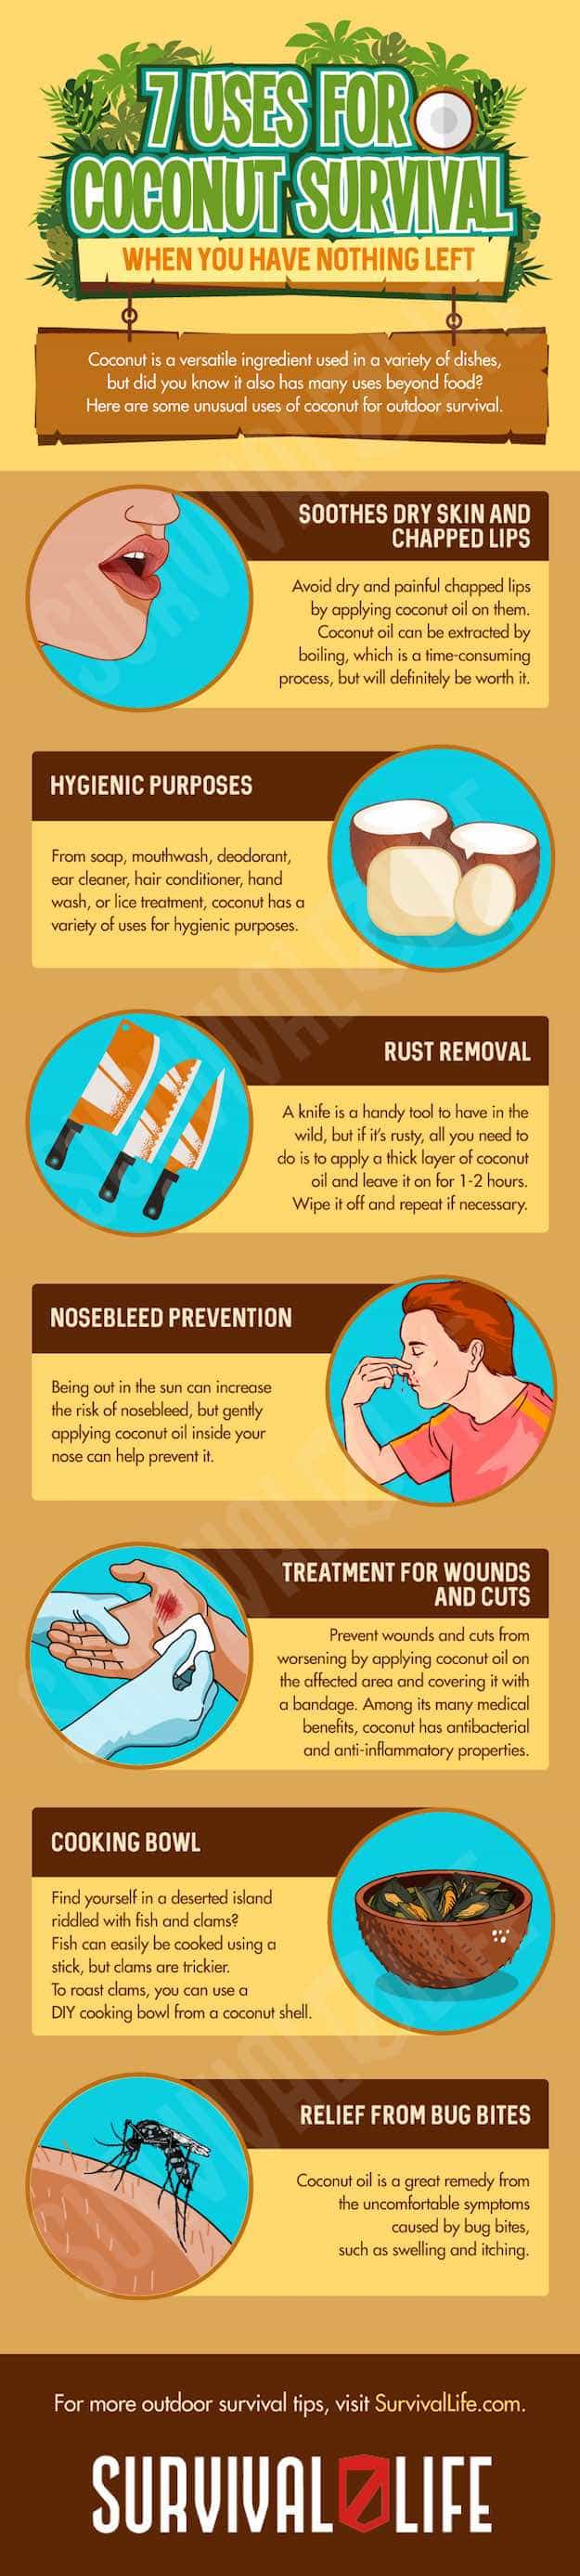 Infographic   Coconut Uses for Survival When You Have Nothing Left